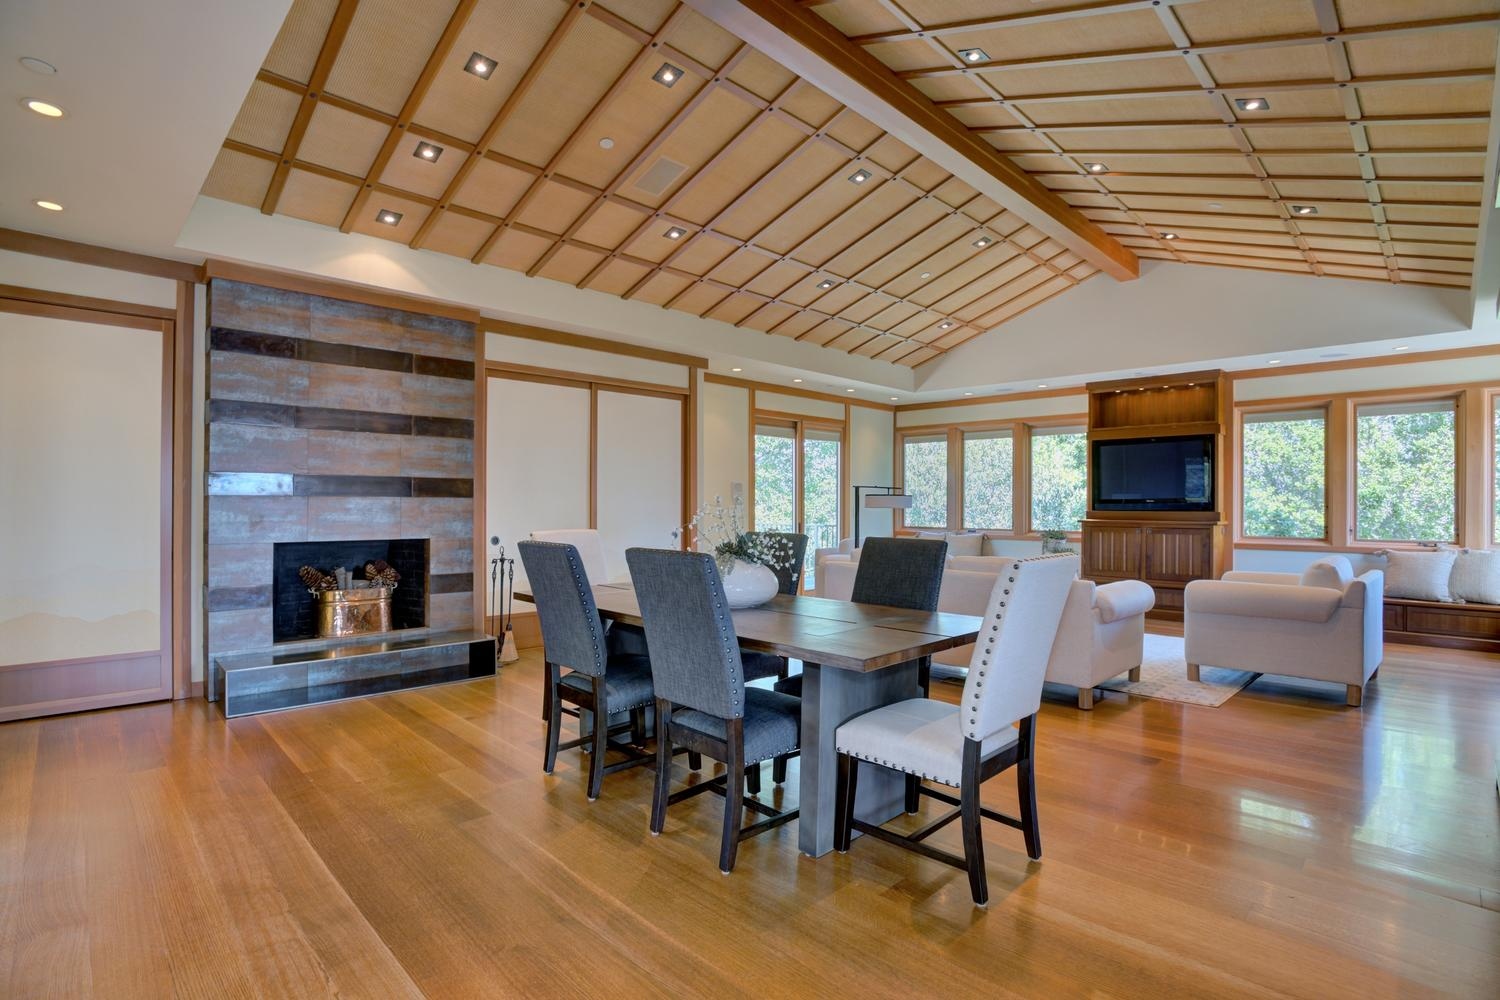 573 More Ave Los Gatos CA-large-008-6-Dining Area and Famly Room-1500x1000-72dpi.jpg